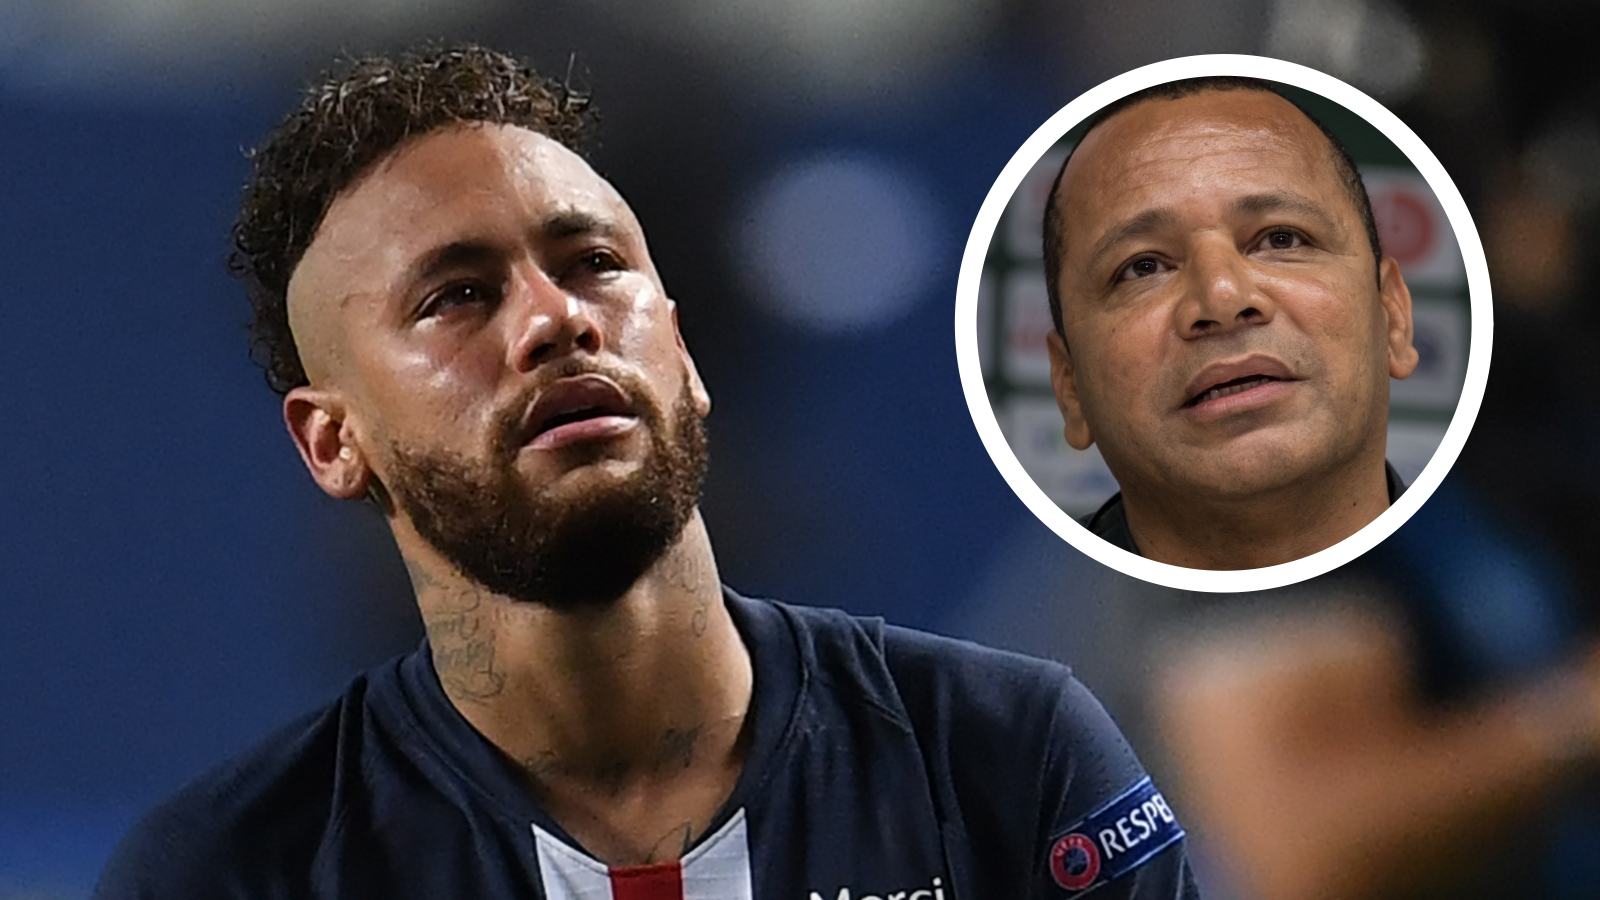 Neymar's father hits back at Caen manager's 'crying' taunt after PSG star's injury